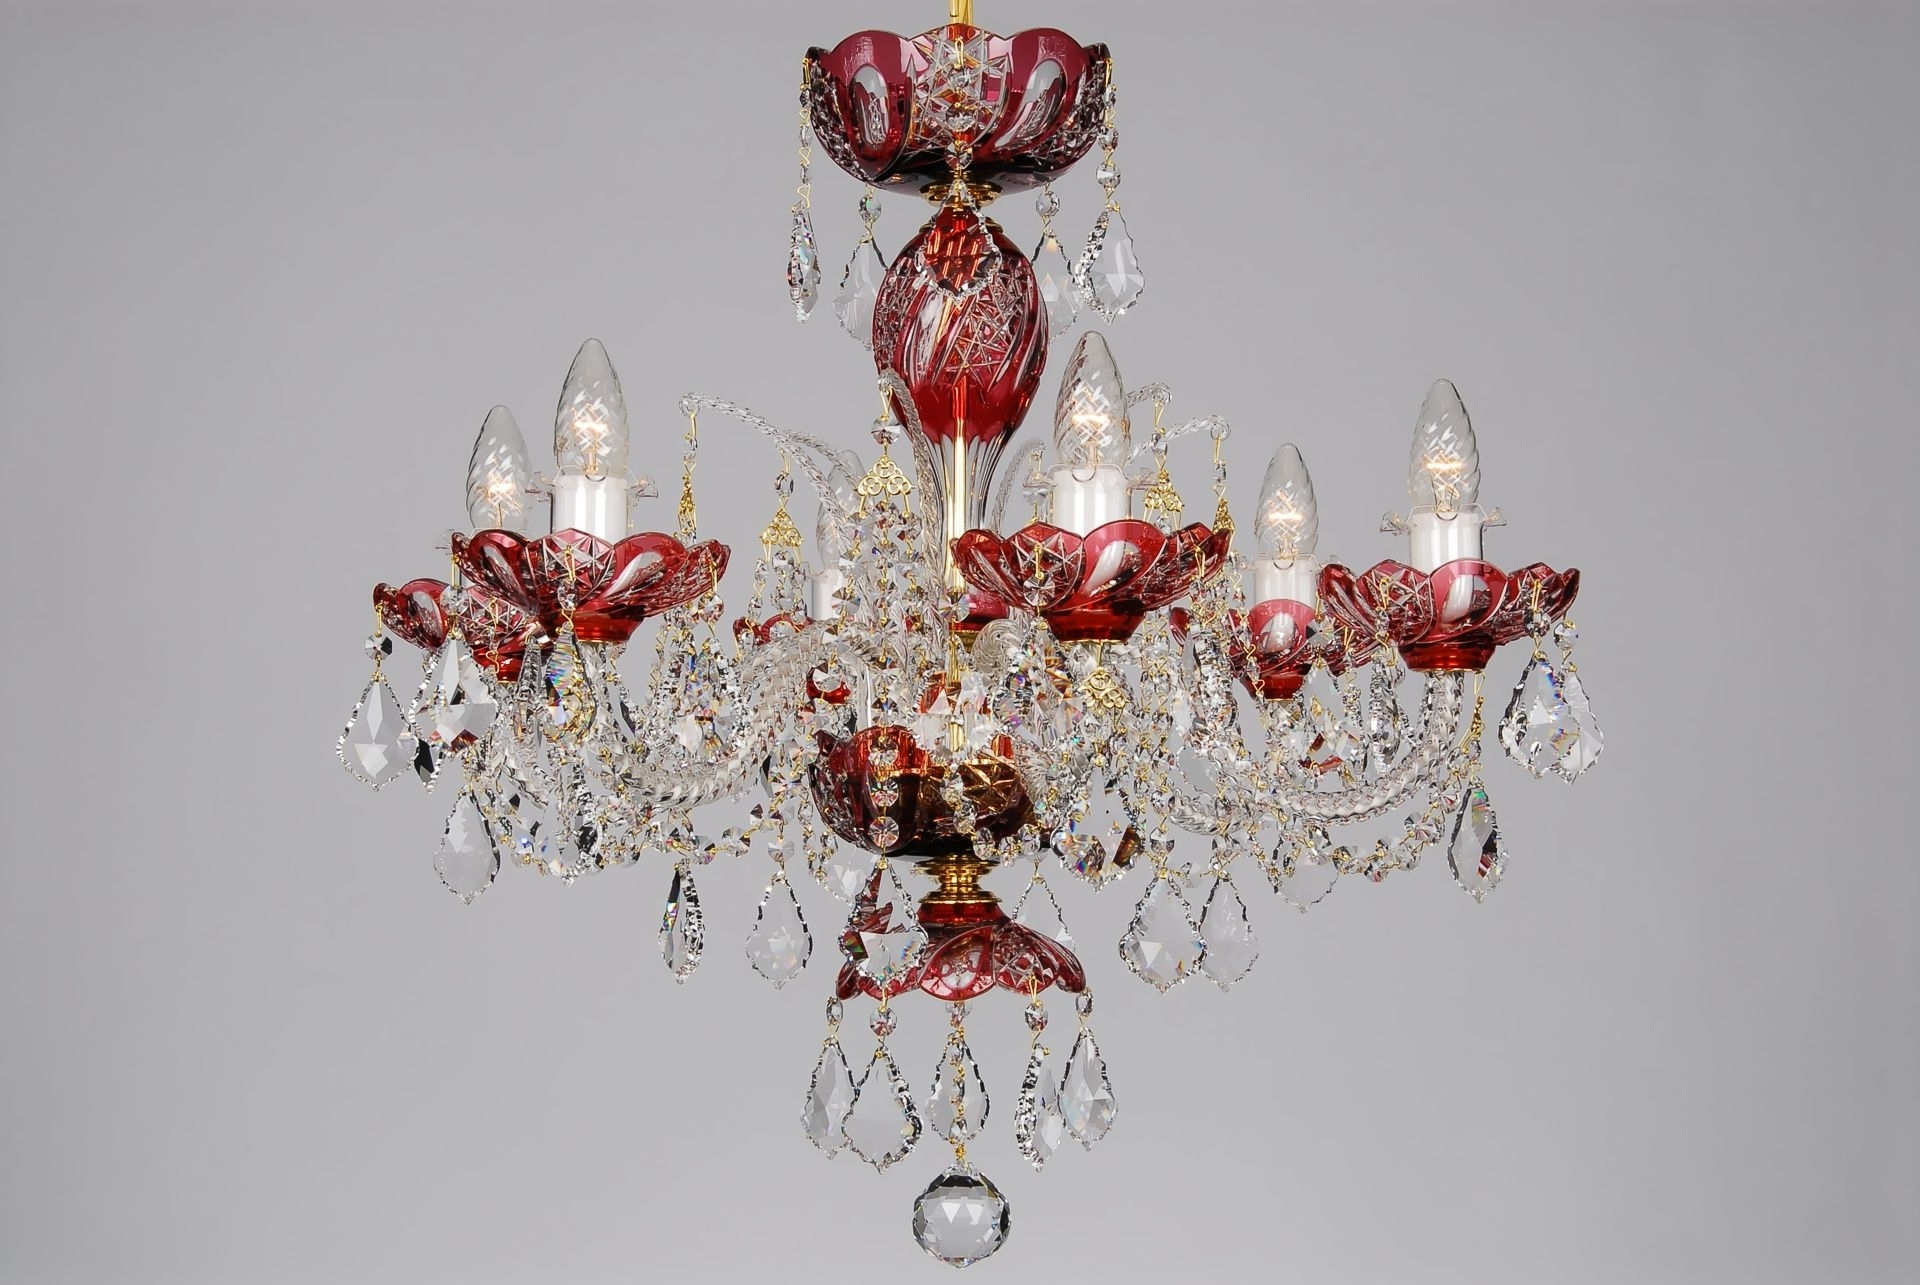 Best And Newest Red Chandeliers Inside A Small Red Crystal Chandelier Decorated With Swarovski Trimmings (View 1 of 20)